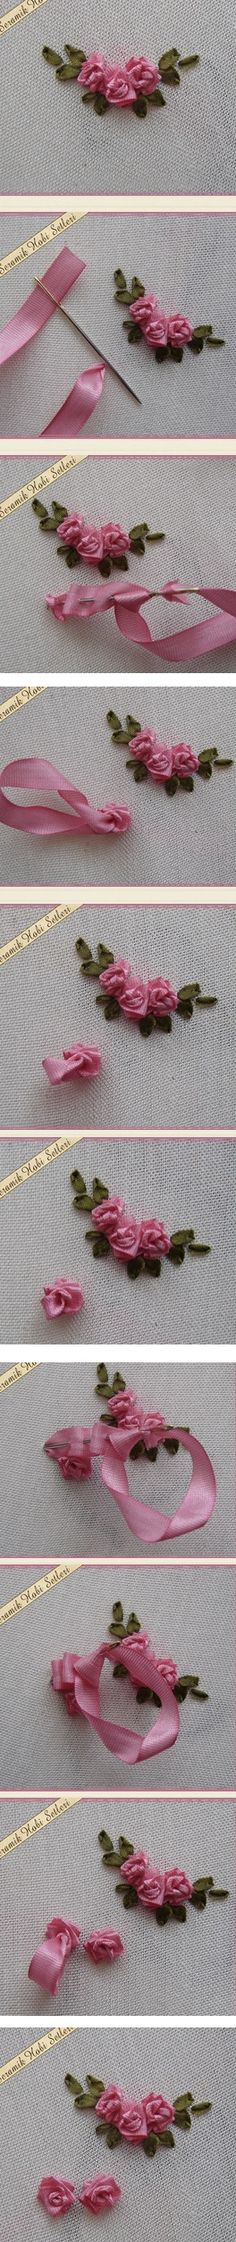 Tutorial for simple ribbon roses